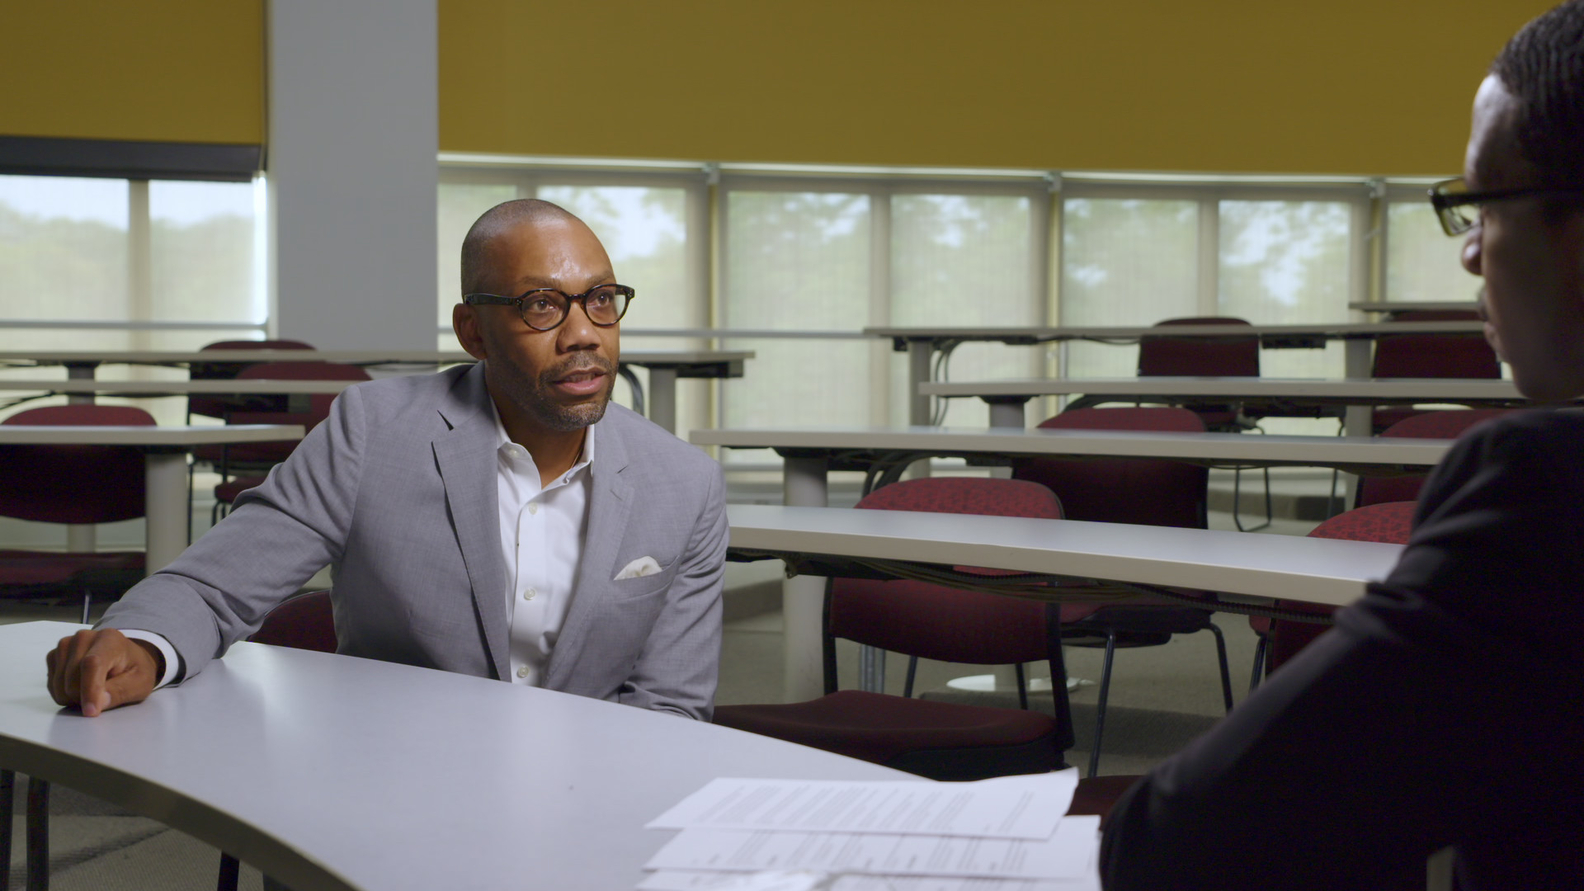 Andre Perry, PhD, Author of Know Your Pride and Axios Markets Editor Dion Rabouin